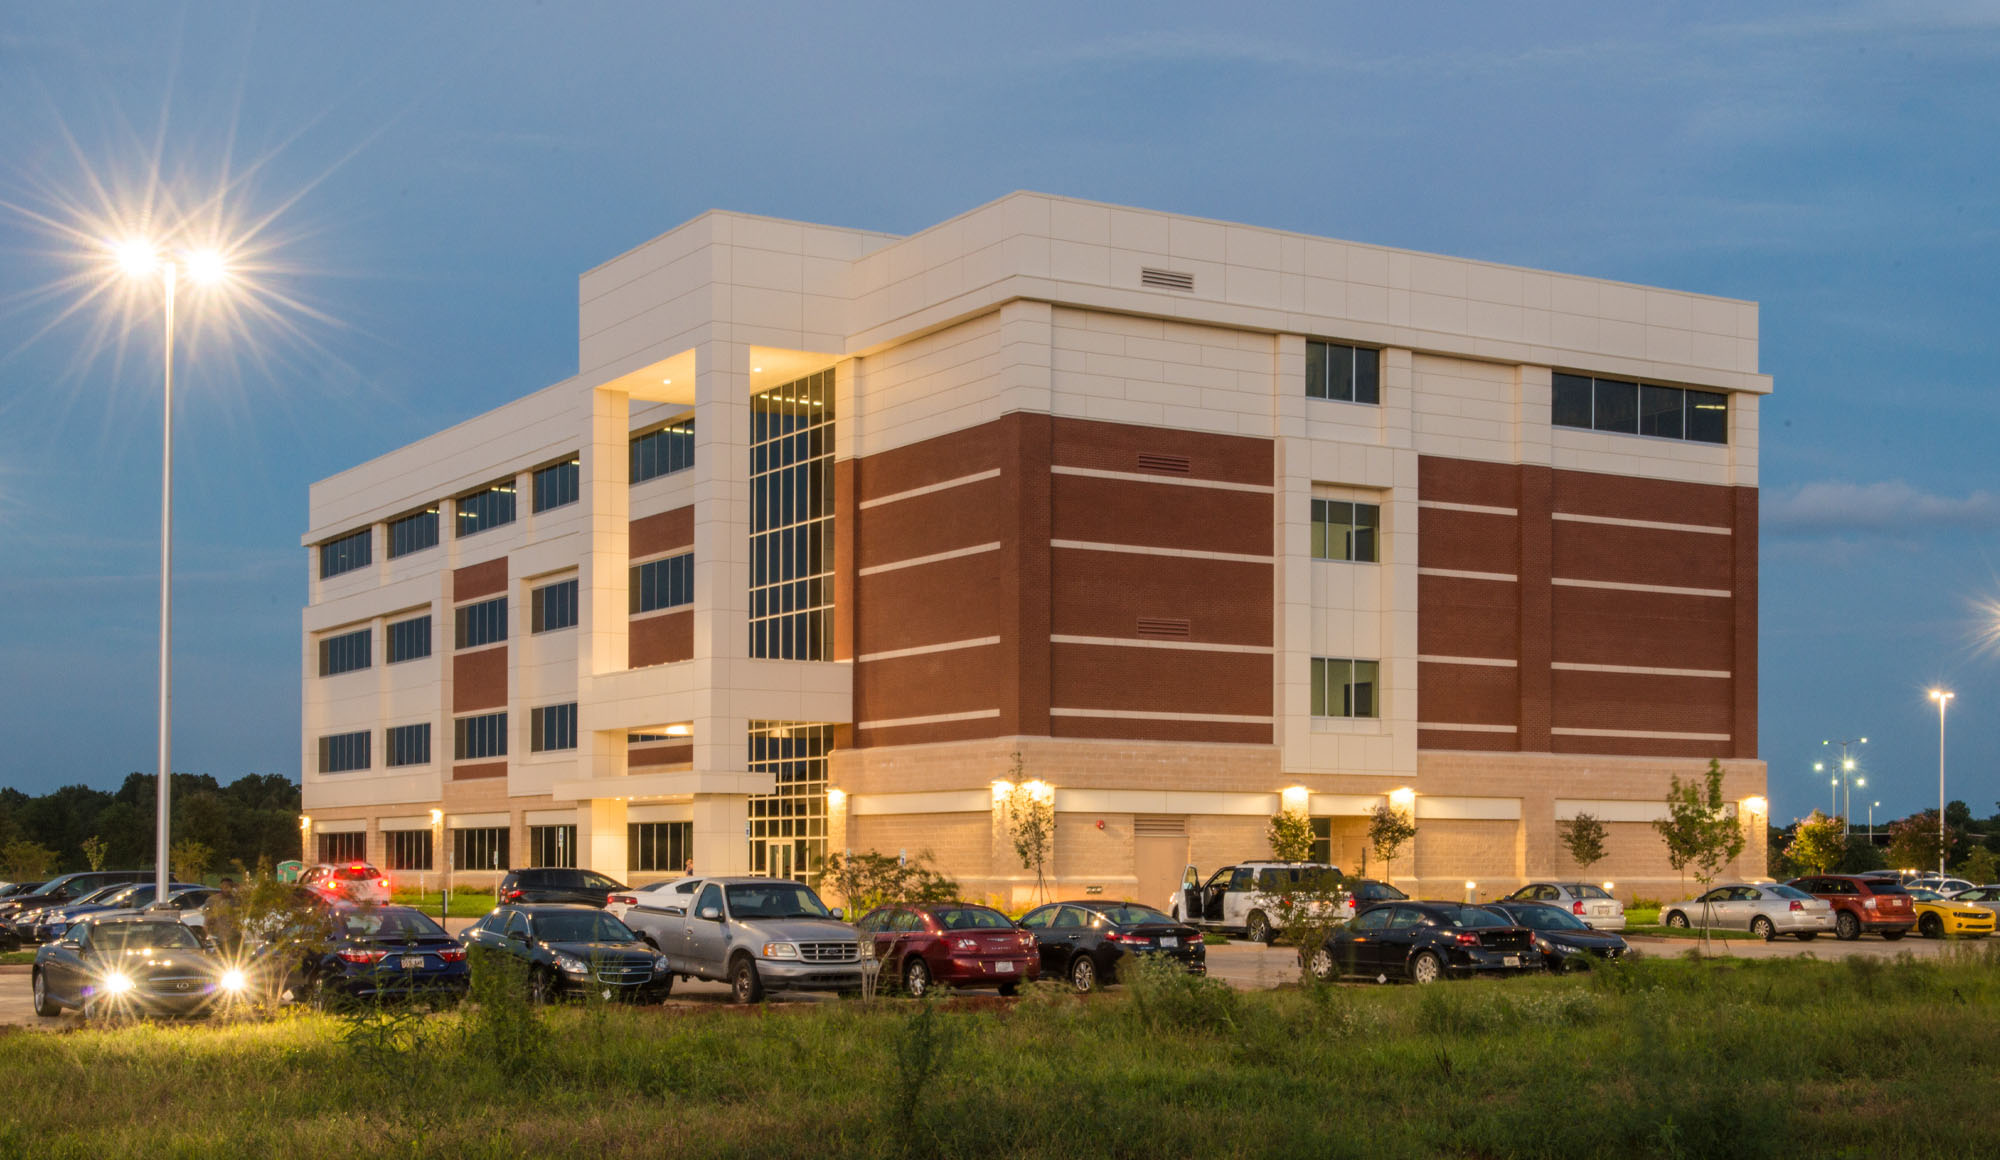 STEM Building at Bossier Parish Community College